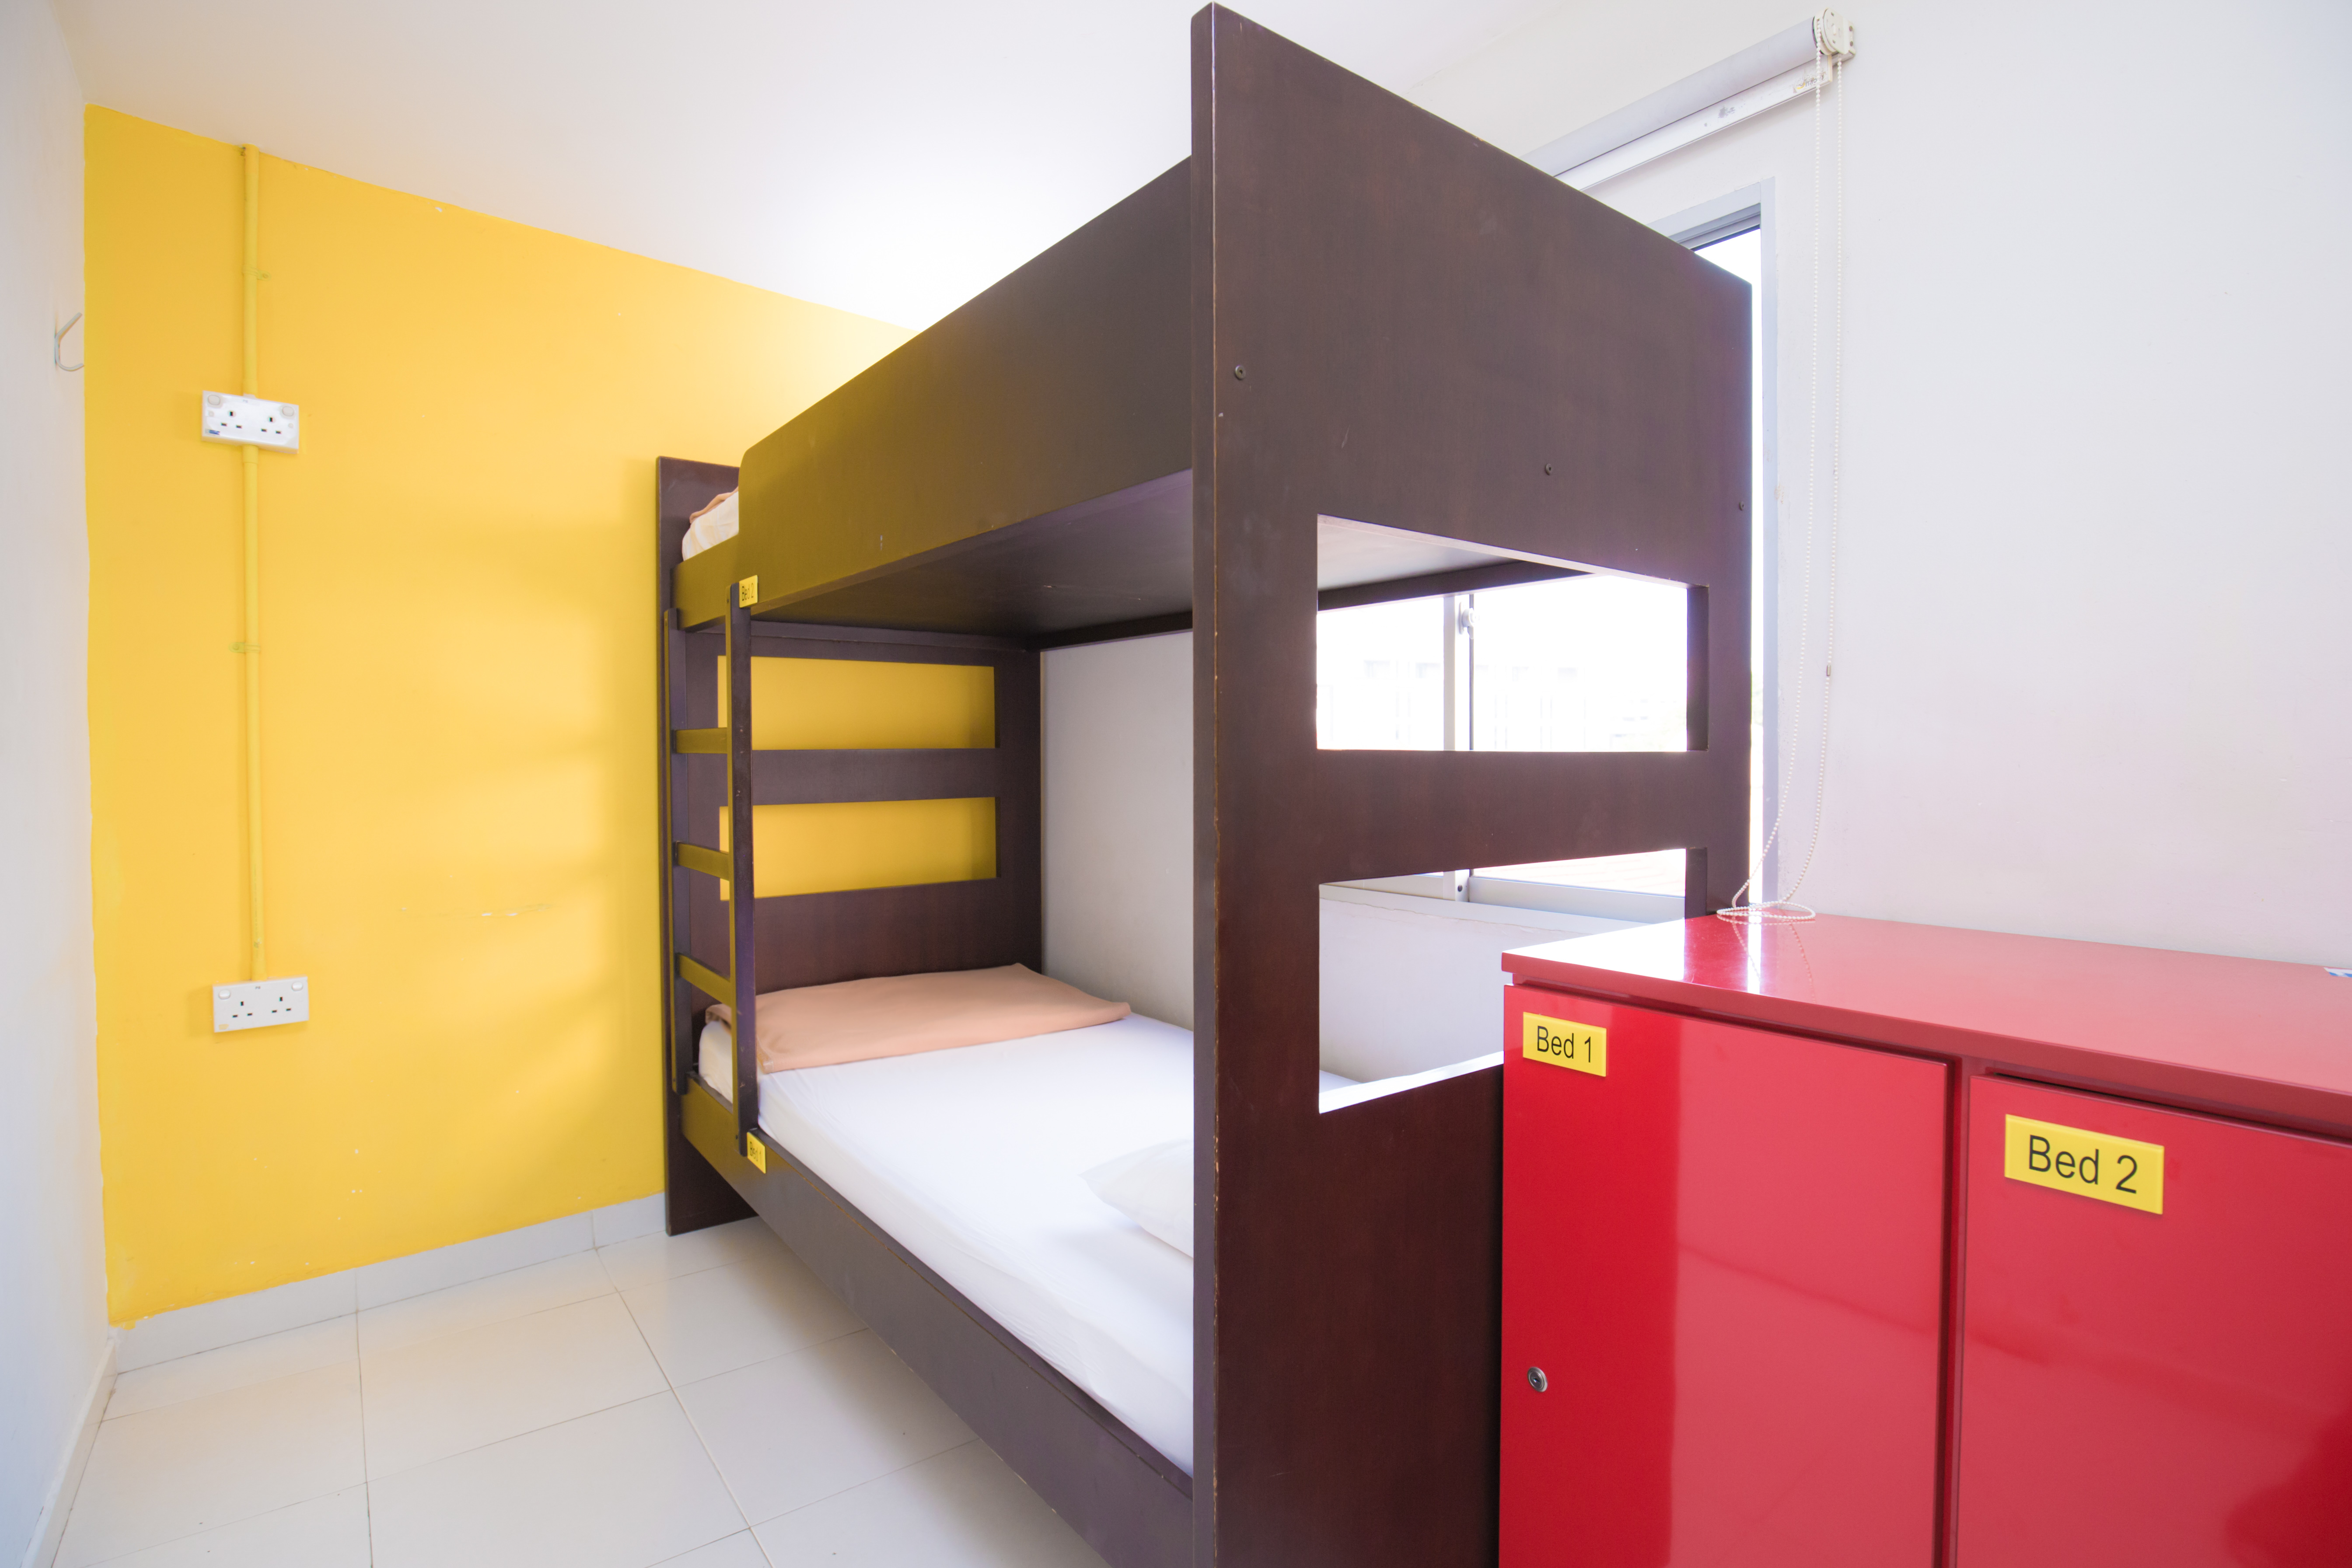 2 Bed Example